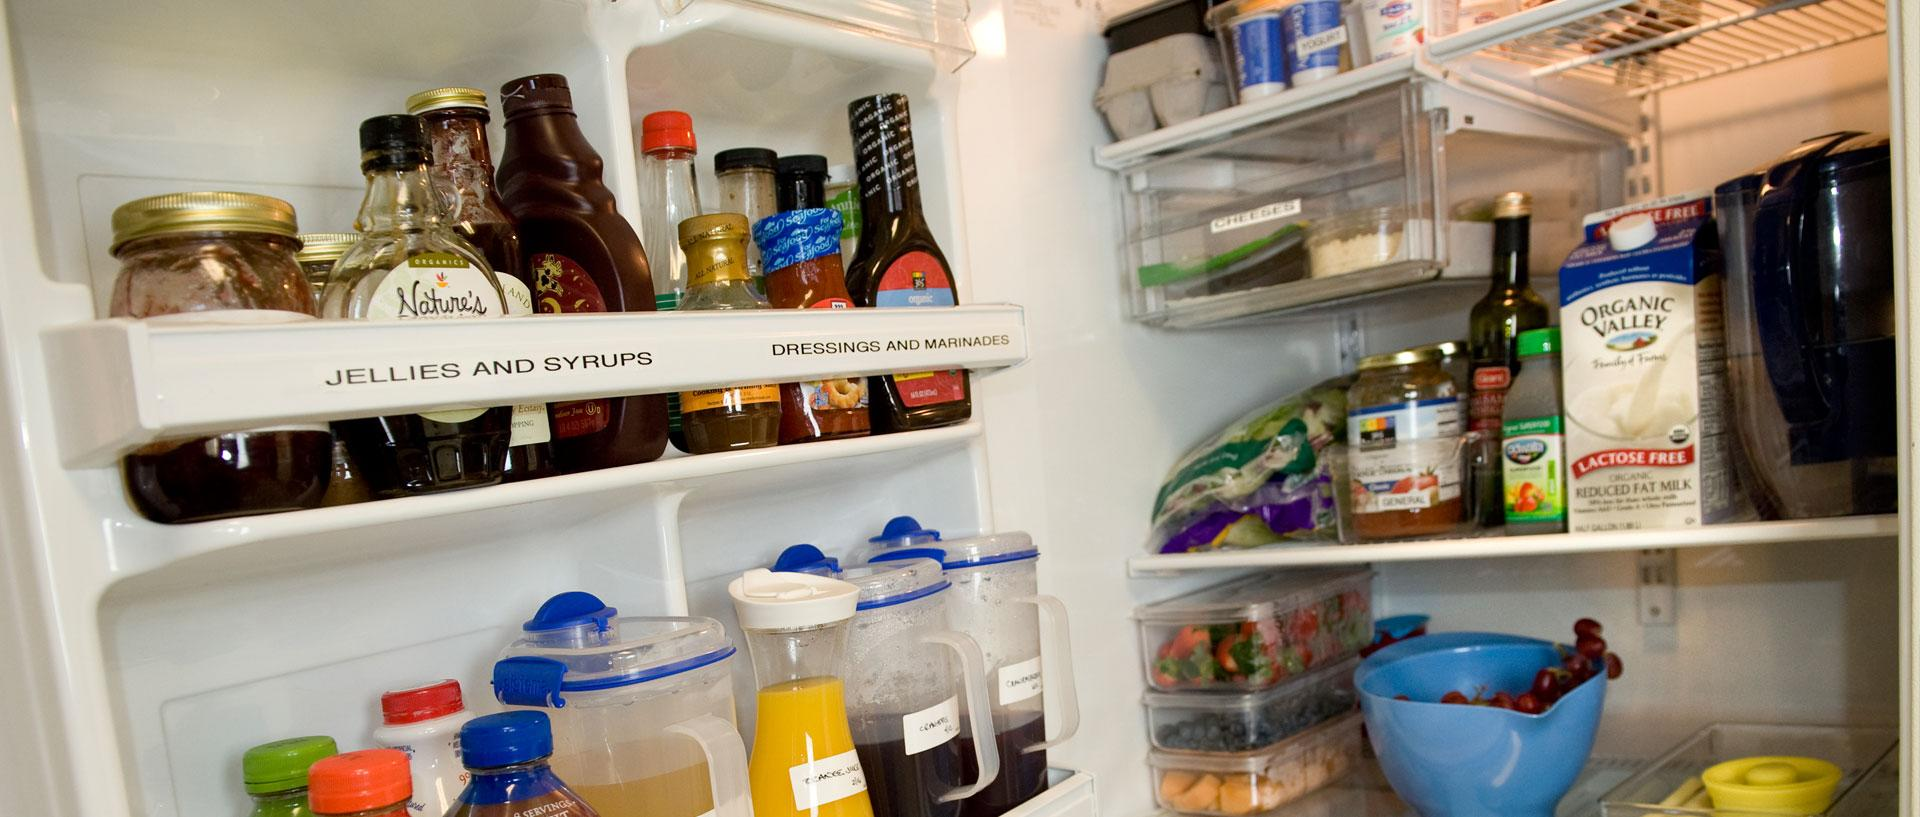 Organize Your Fridge for Healthy Eating This Holiday